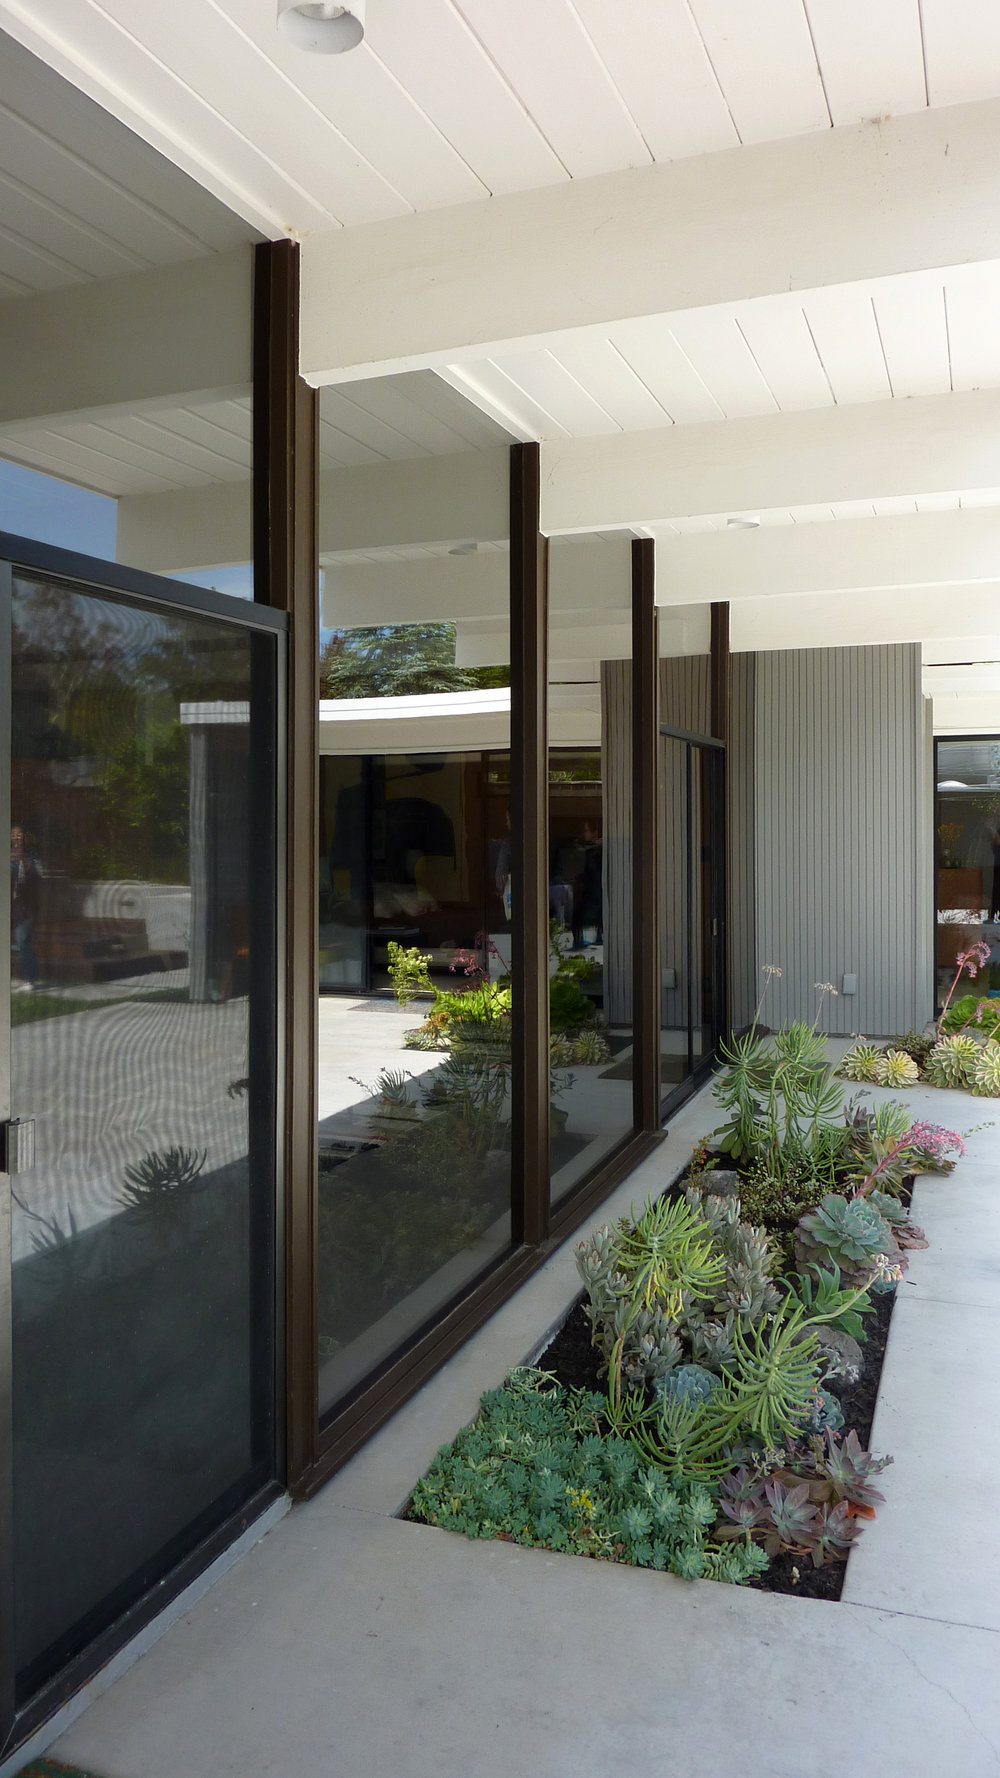 Eichler Home Tour 2017 - 173 1755 Lexington.JPG